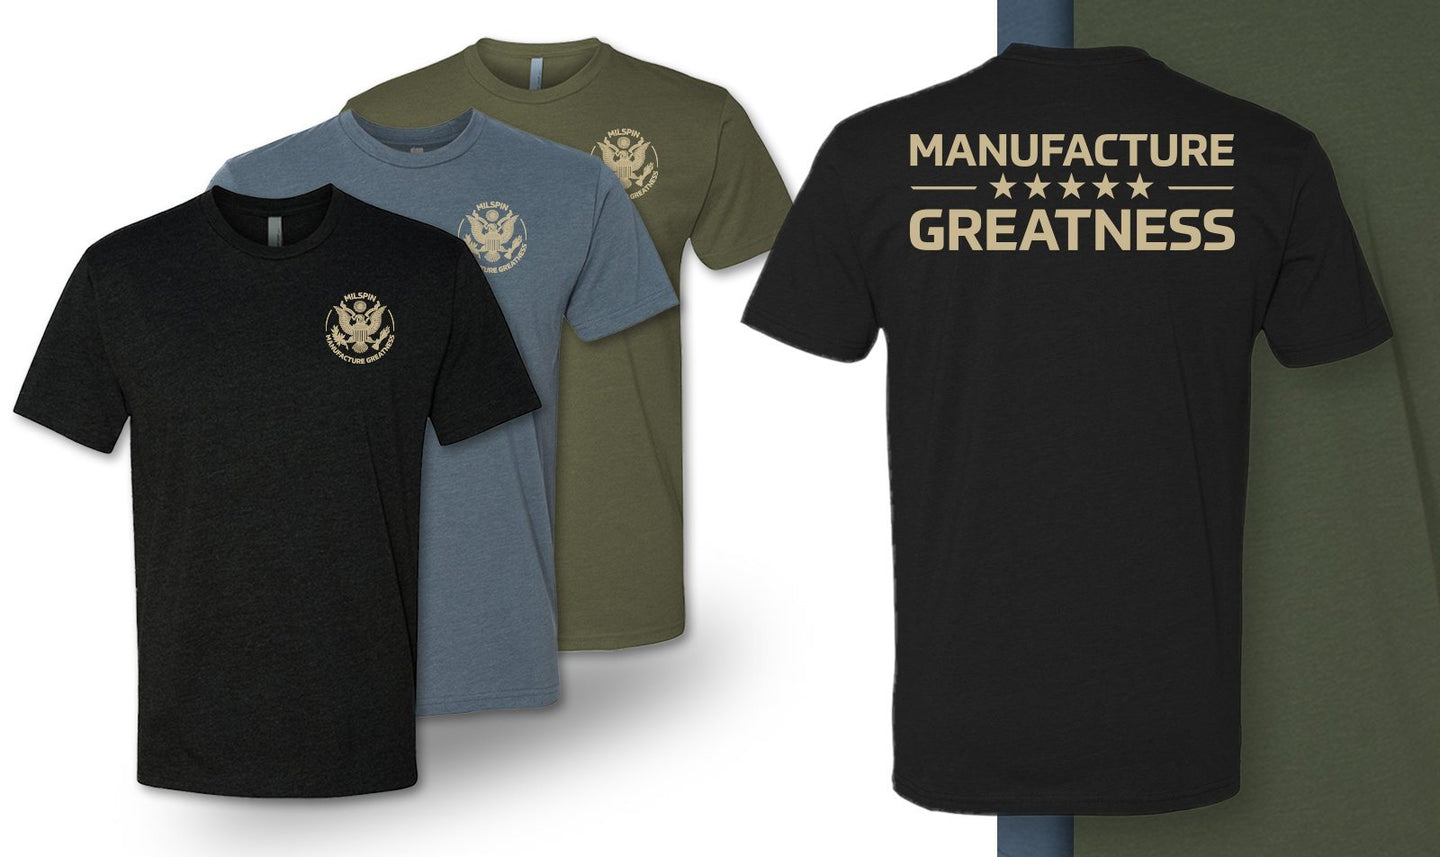 Milspin 'Manufacture Greatness' T-Shirt